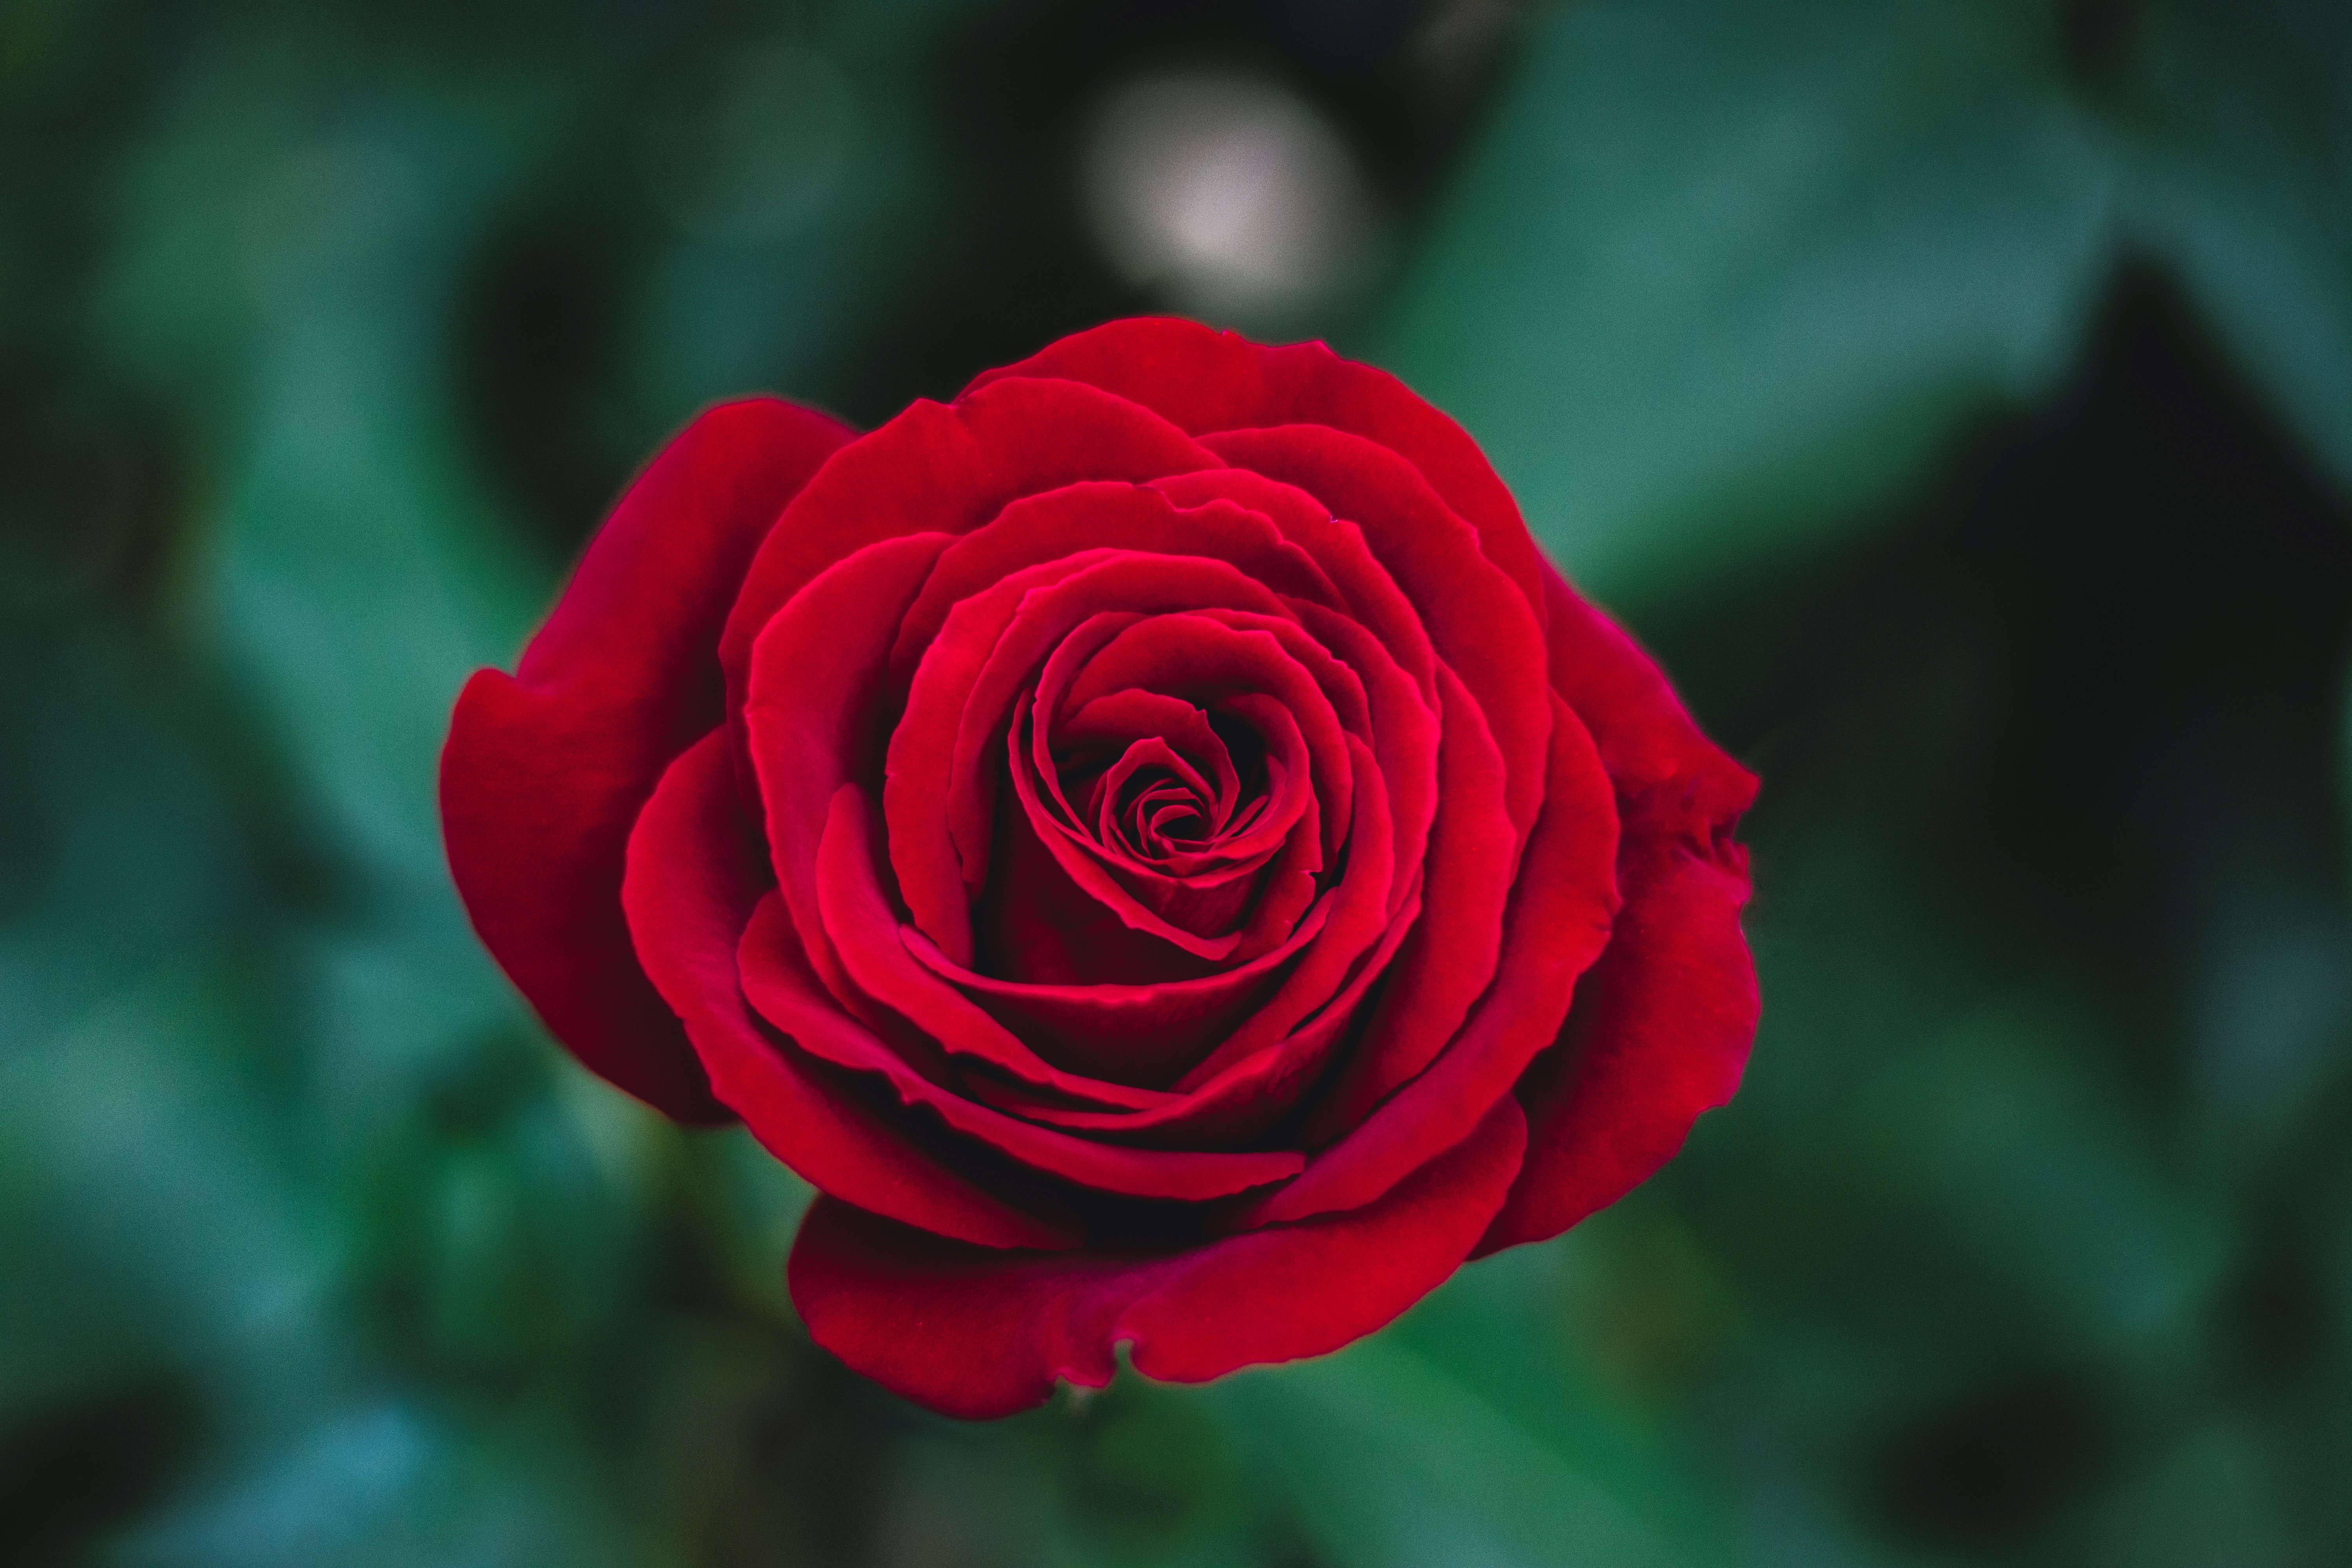 350 Red Rose Images Hq Download Free Pictures On Unsplash